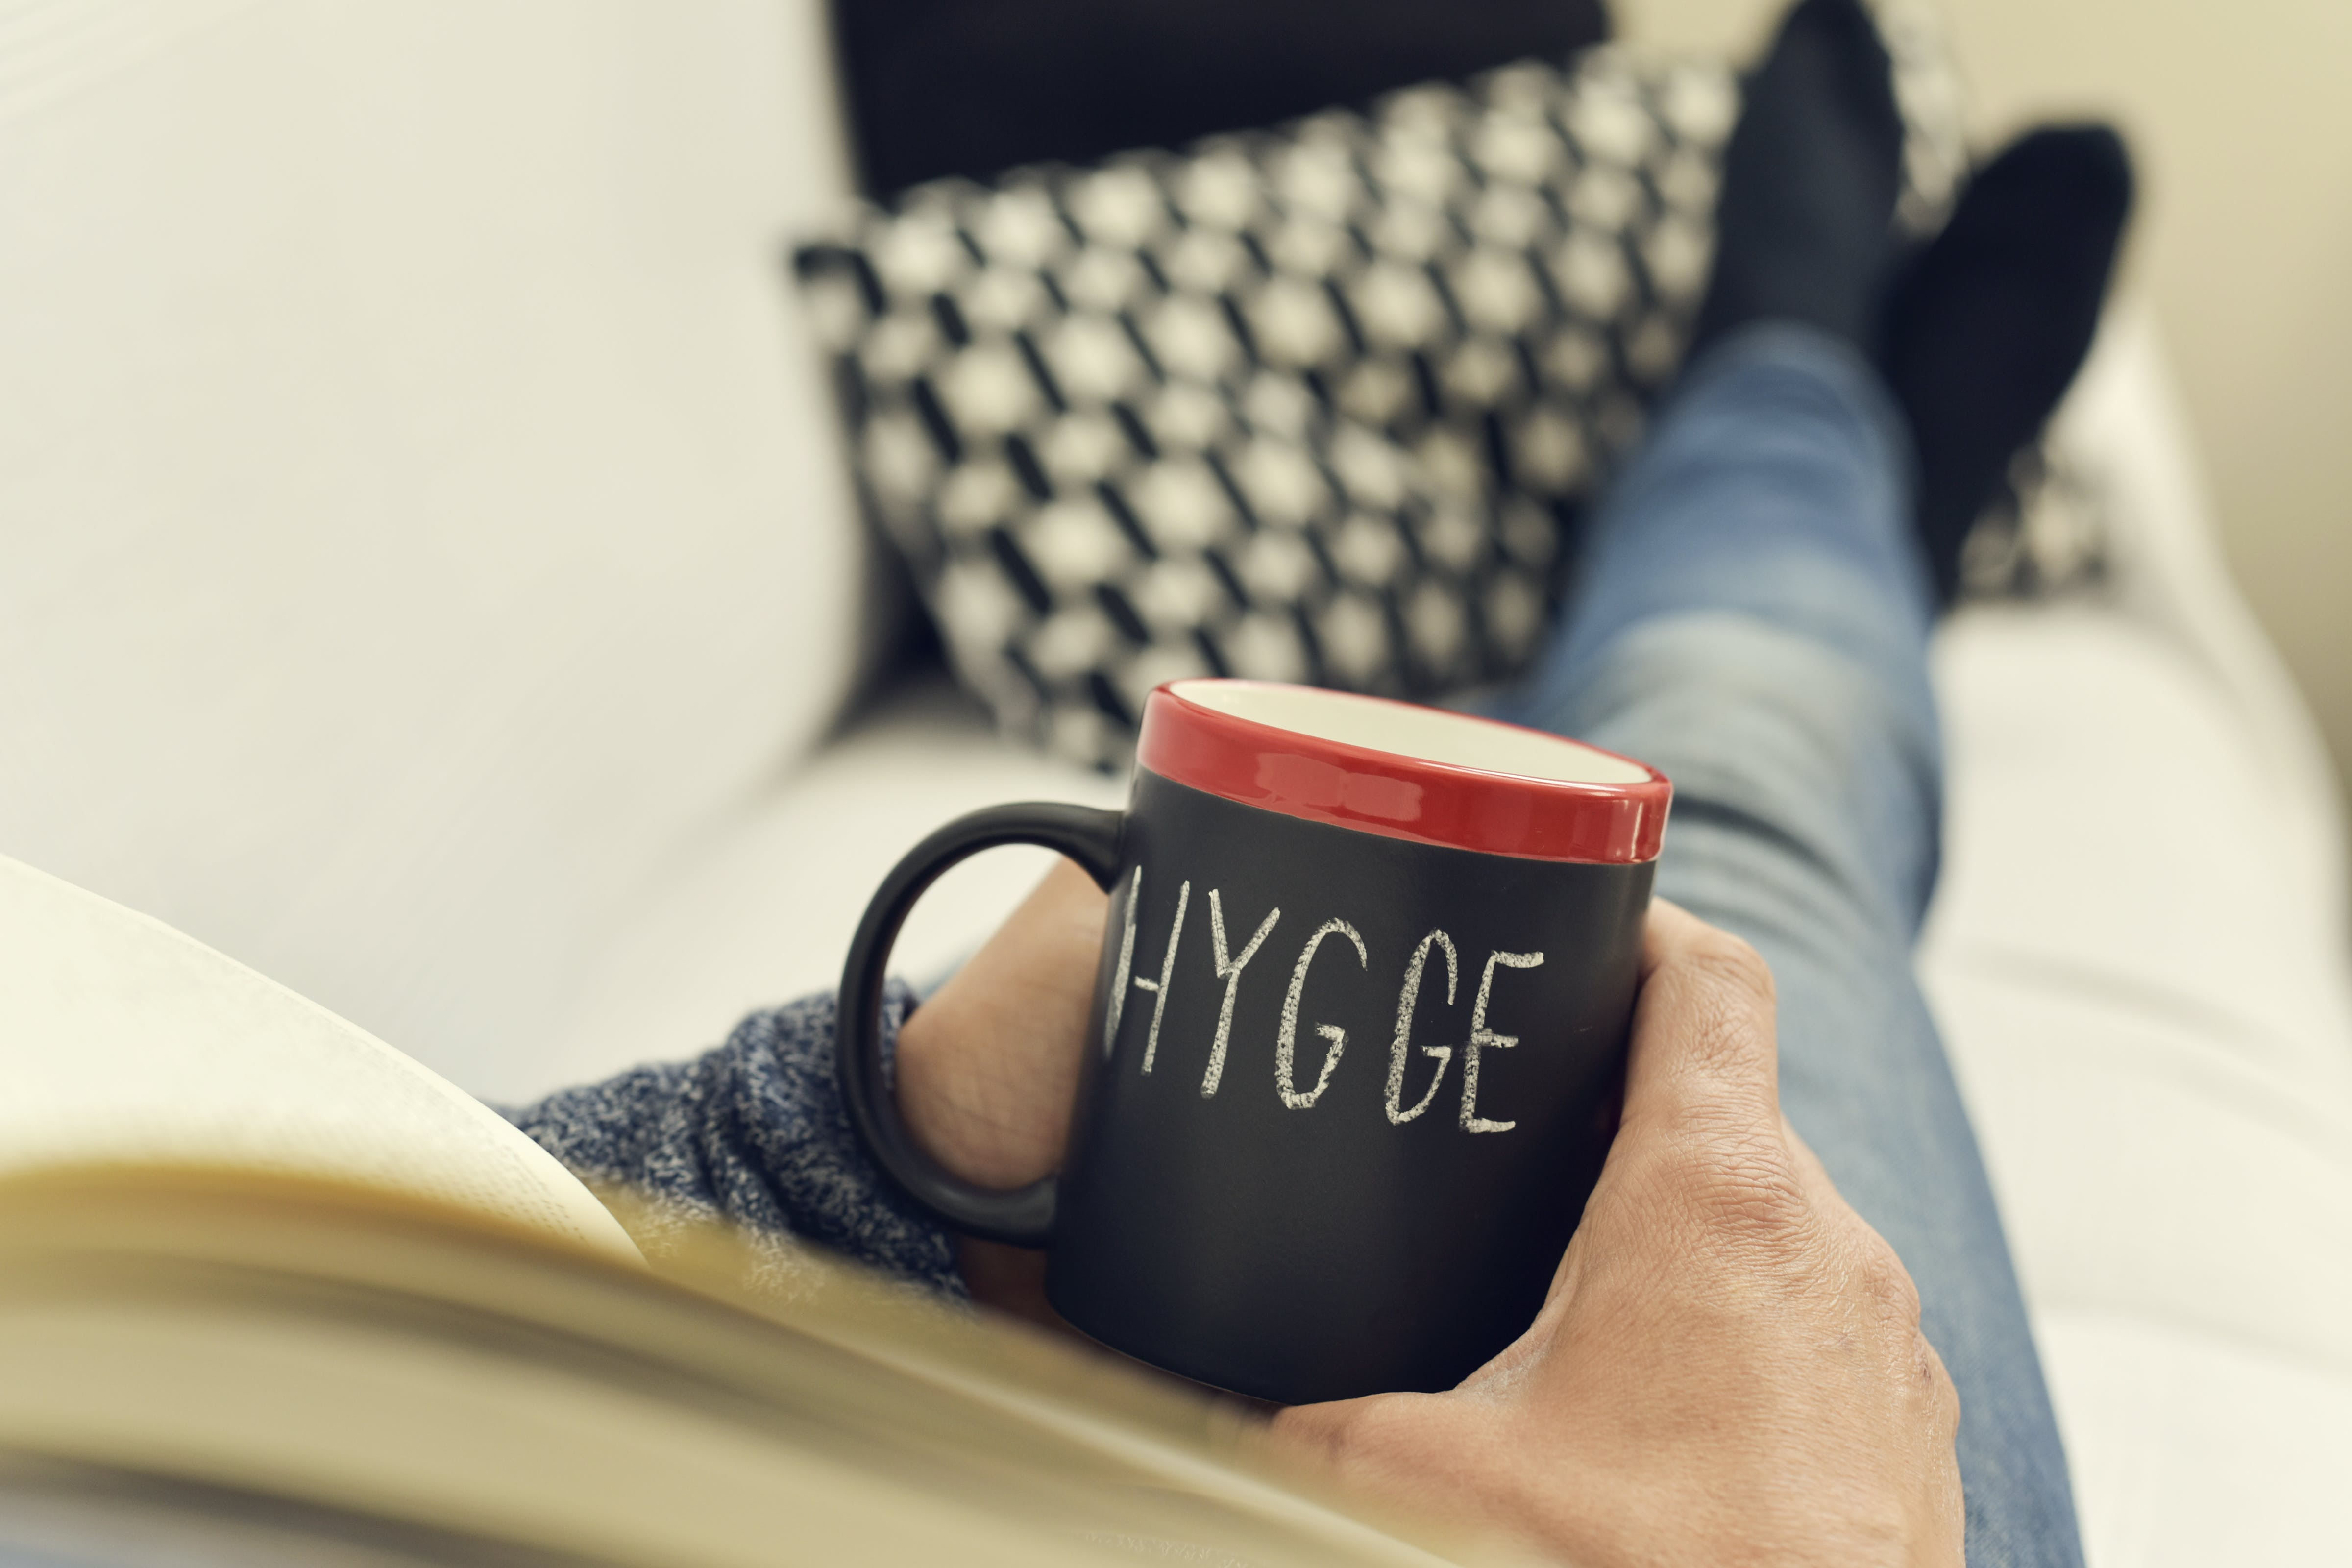 Hygge means coziness or warmth.